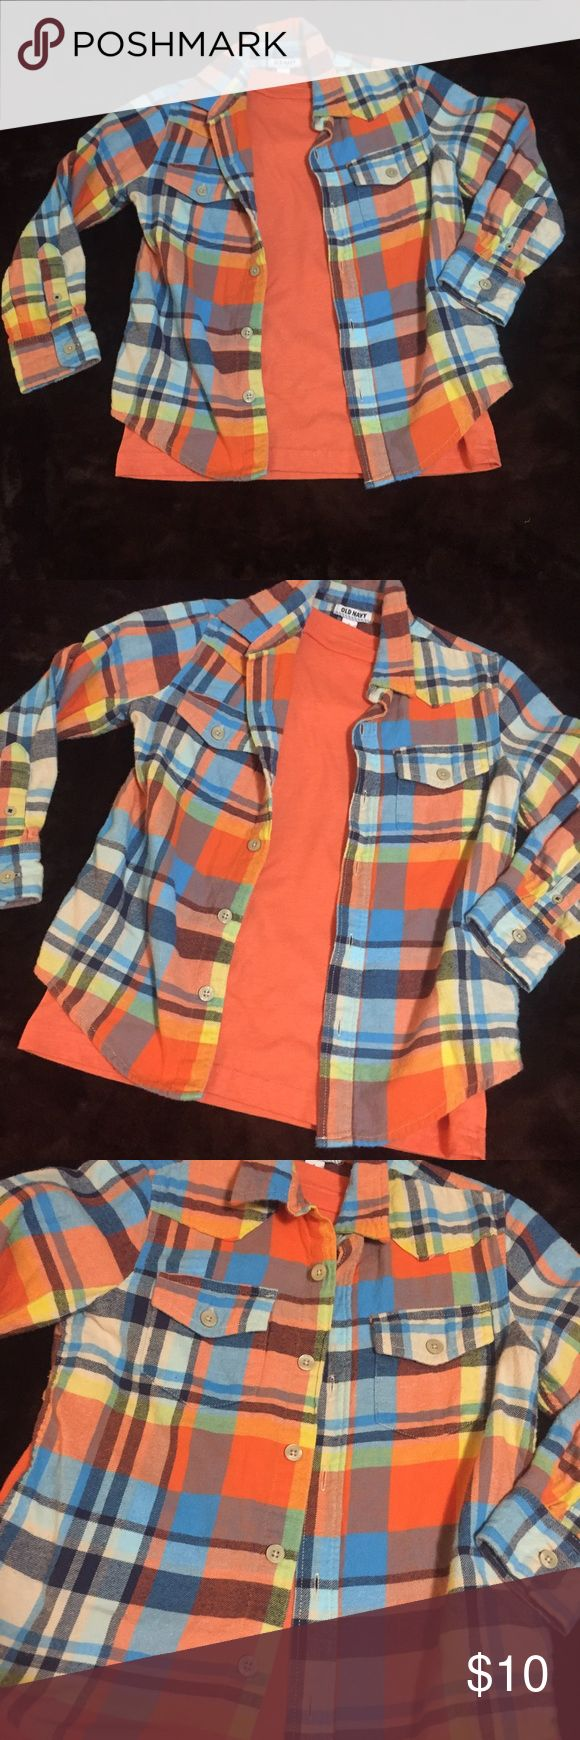 Boys flannel Boys old navy flannel size small and orange short sleeve under shirt size med.   Both in good shape no rips, stains or missing buttons.  I love this shirt and its great for the upcoming spring!!! Old Navy Shirts & Tops Button Down Shirts